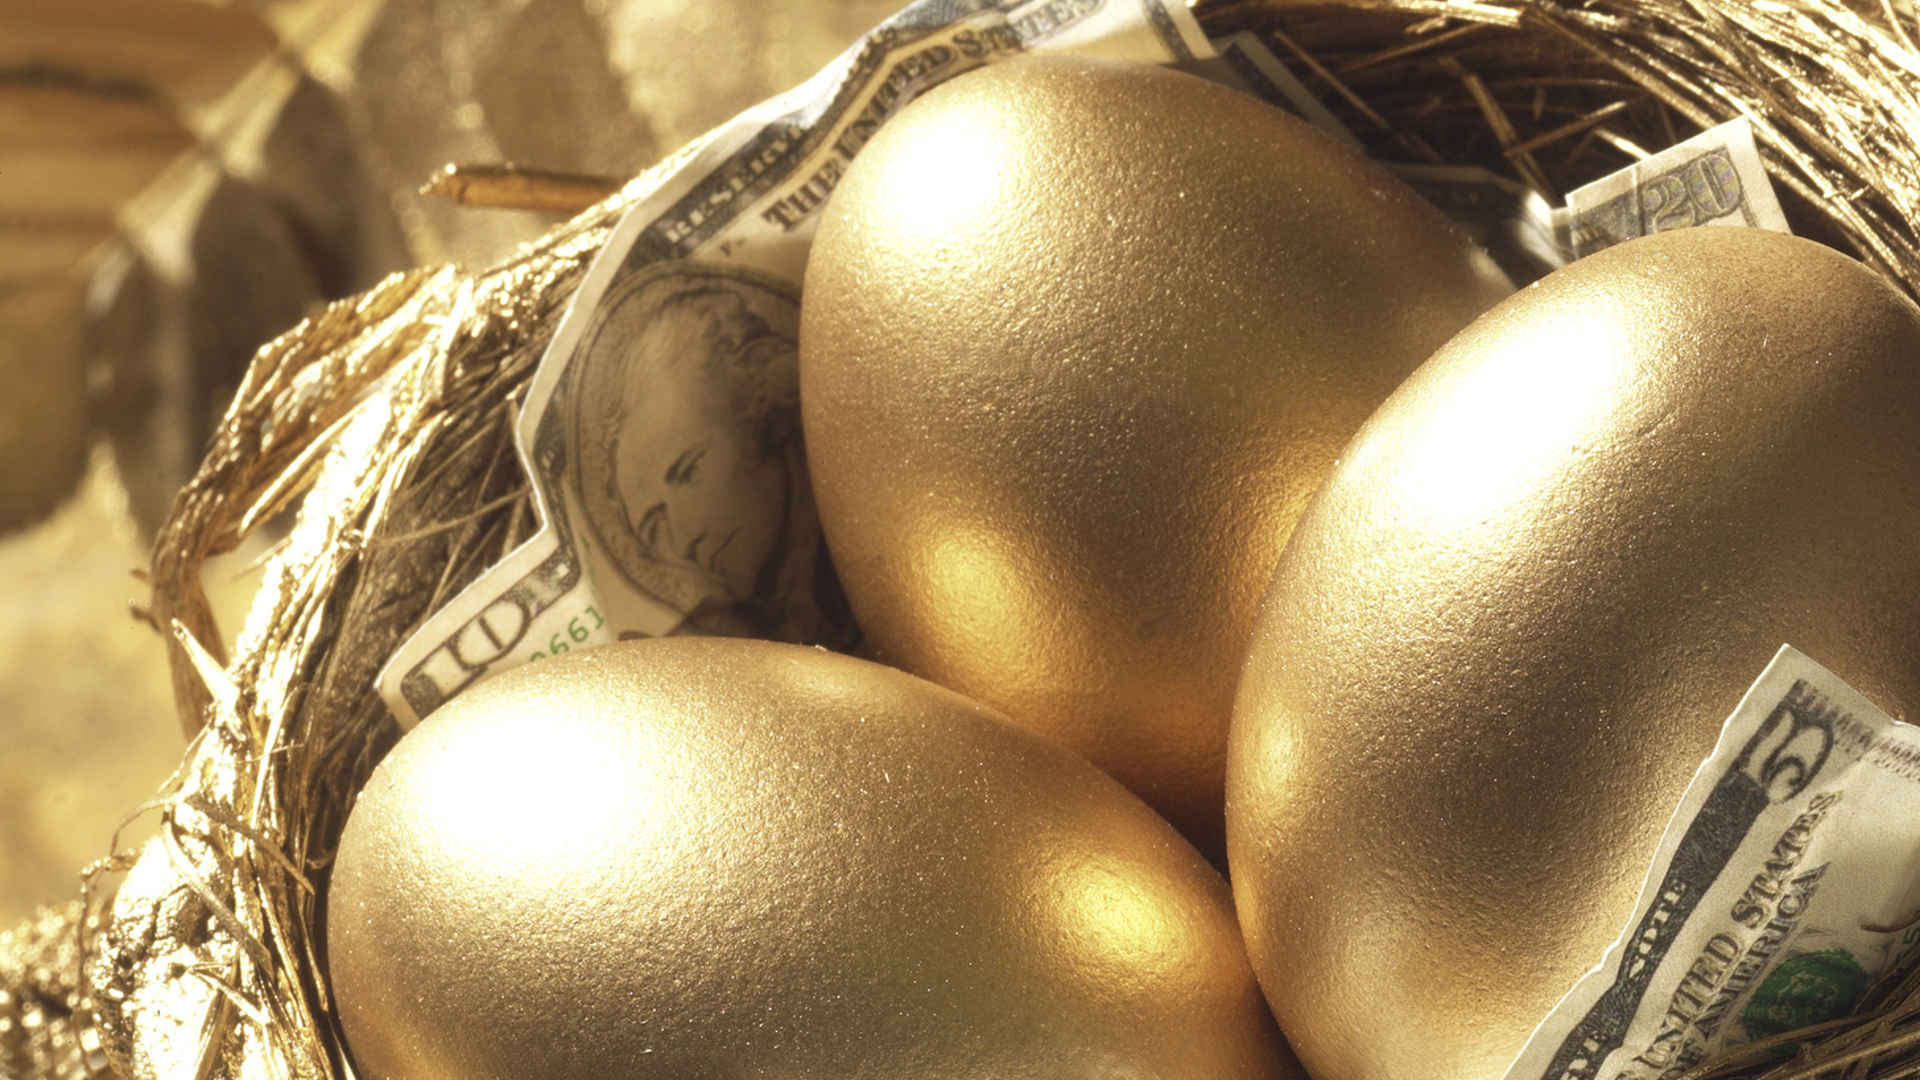 Close-up of golden eggs with paper currency in a bird's nest